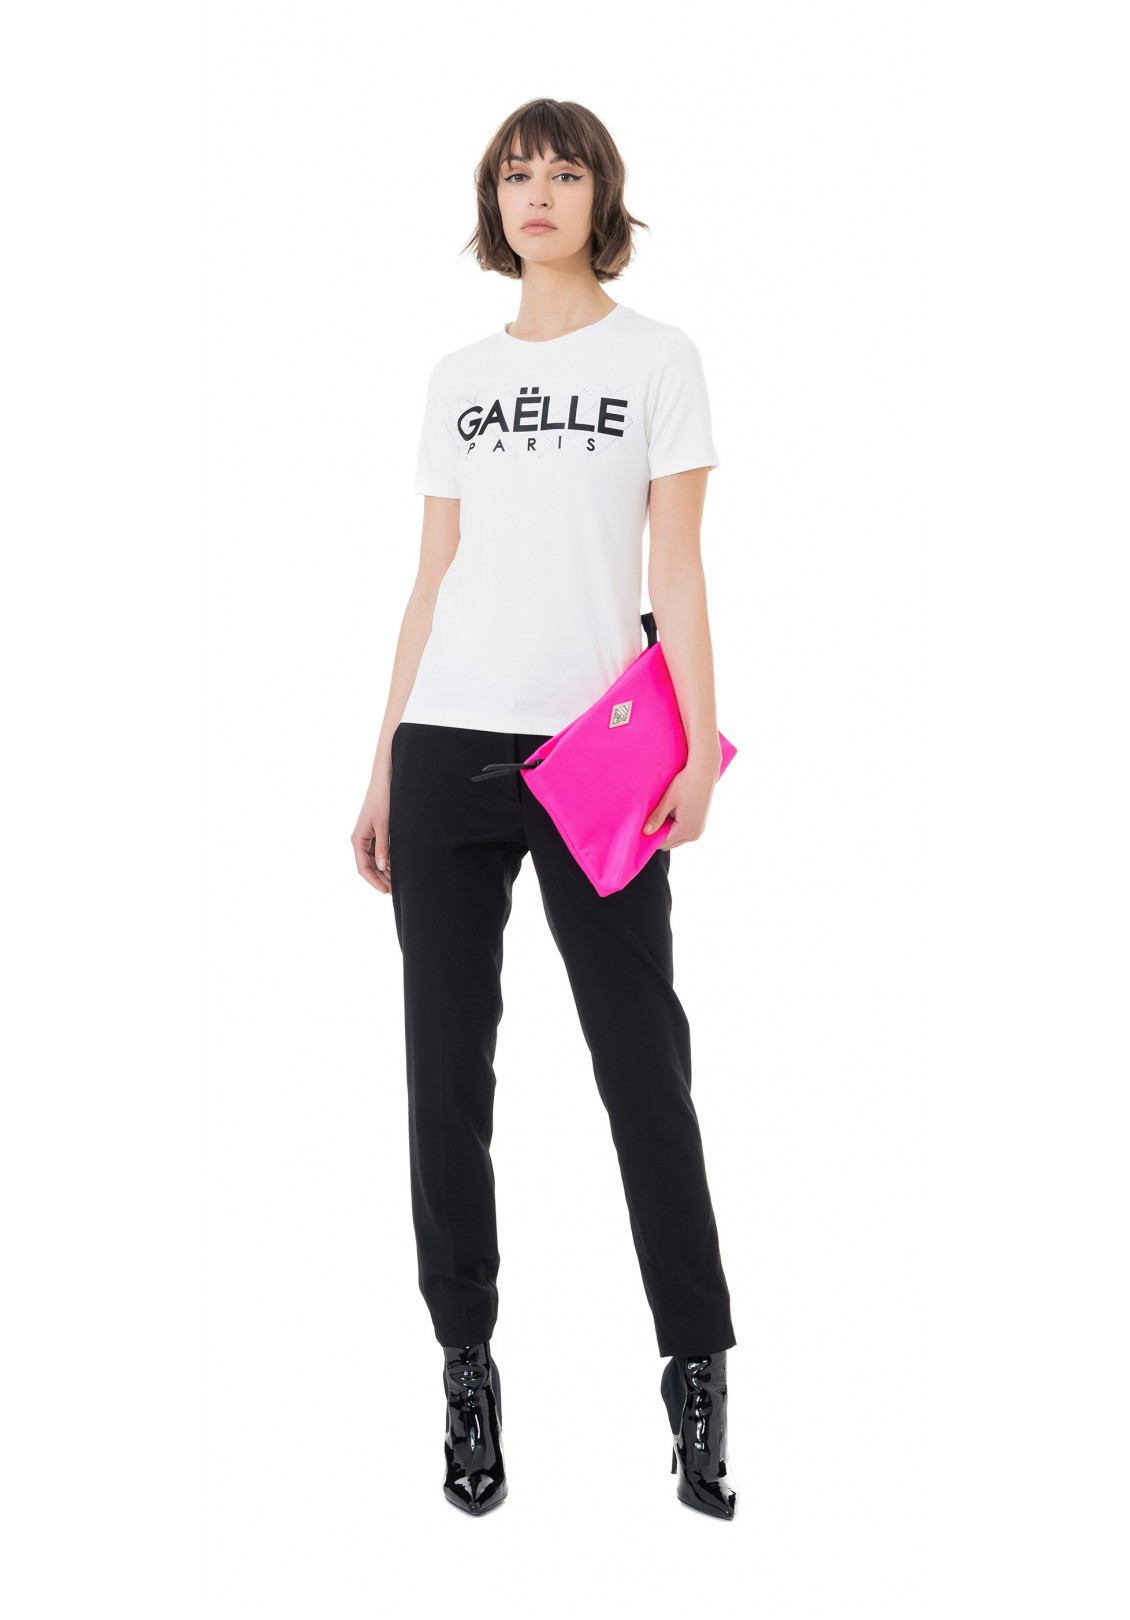 T-SHIRT - GBD5455 - GAELLE PARIS